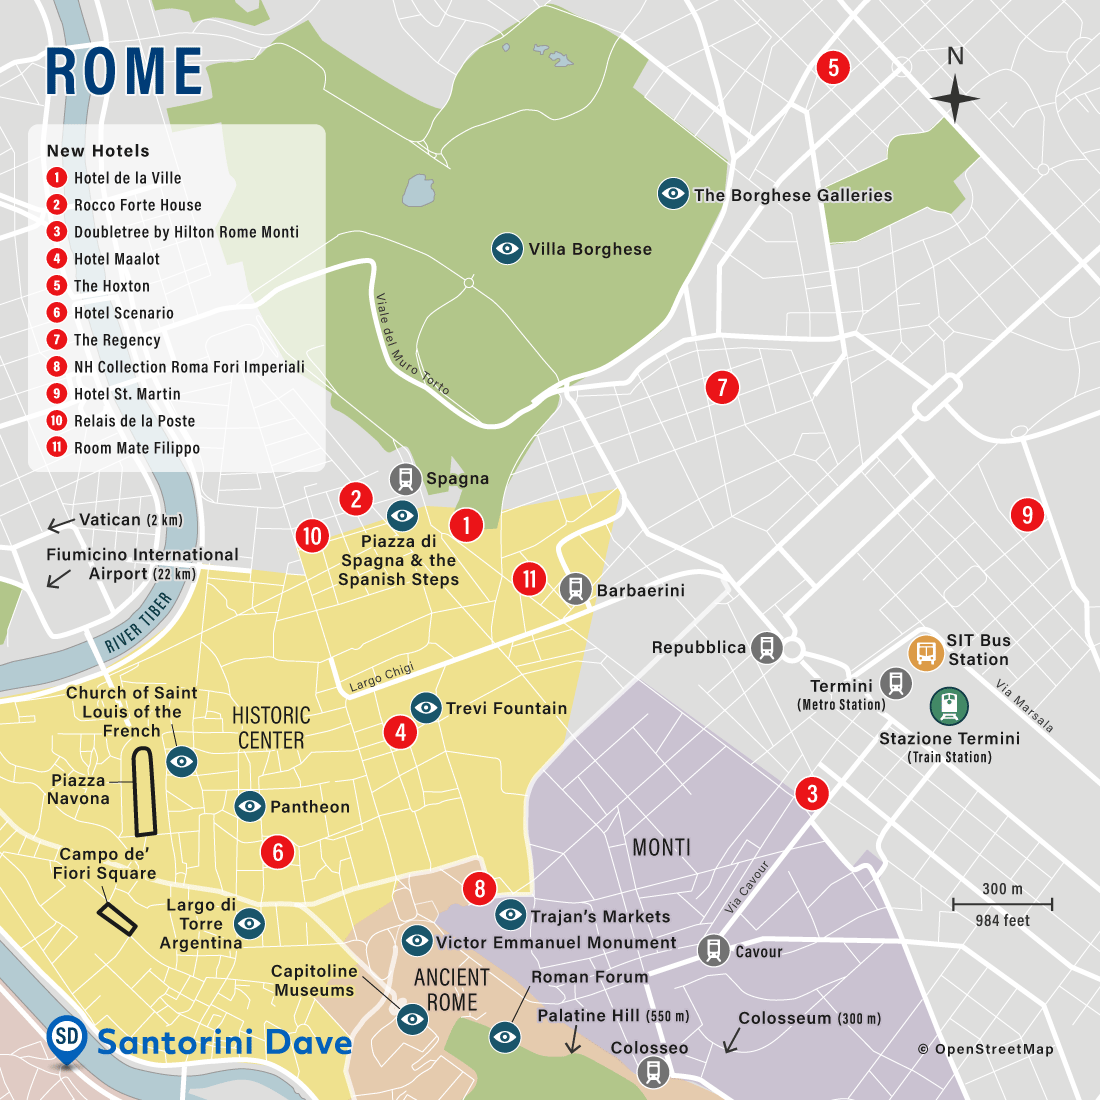 Map showing the locations of the best new hotels in Rome, Italy